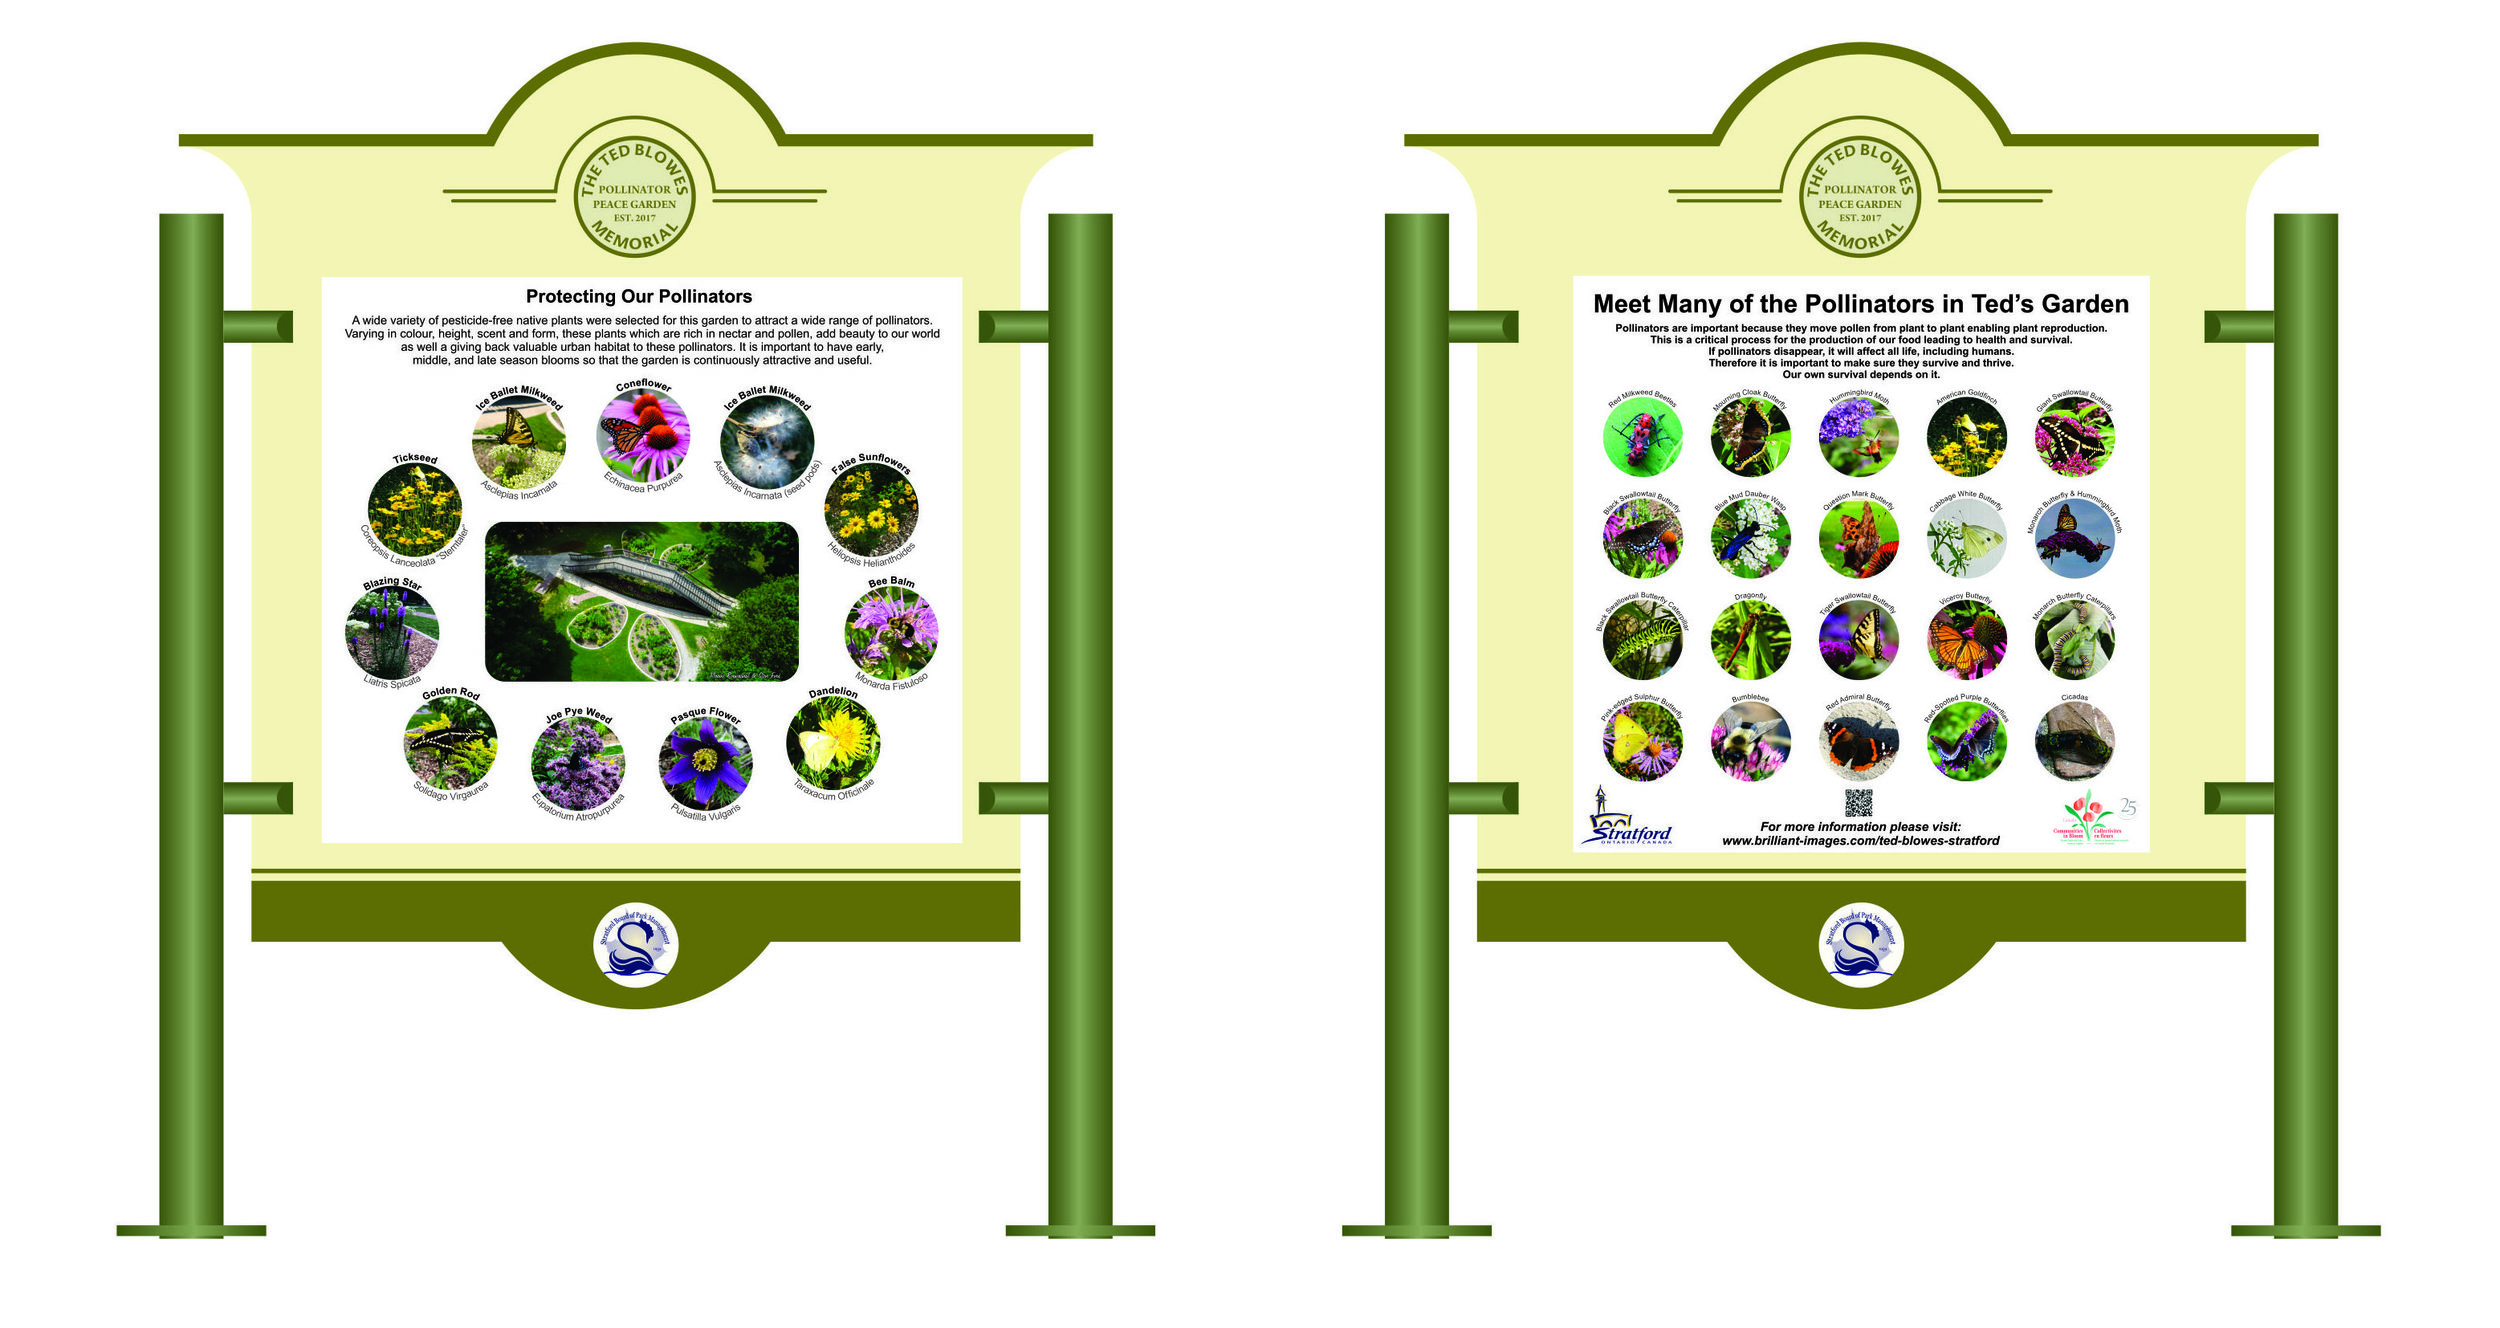 educational signs were added during the summer of 2019 as a communities in bloom 25th anniversary project.